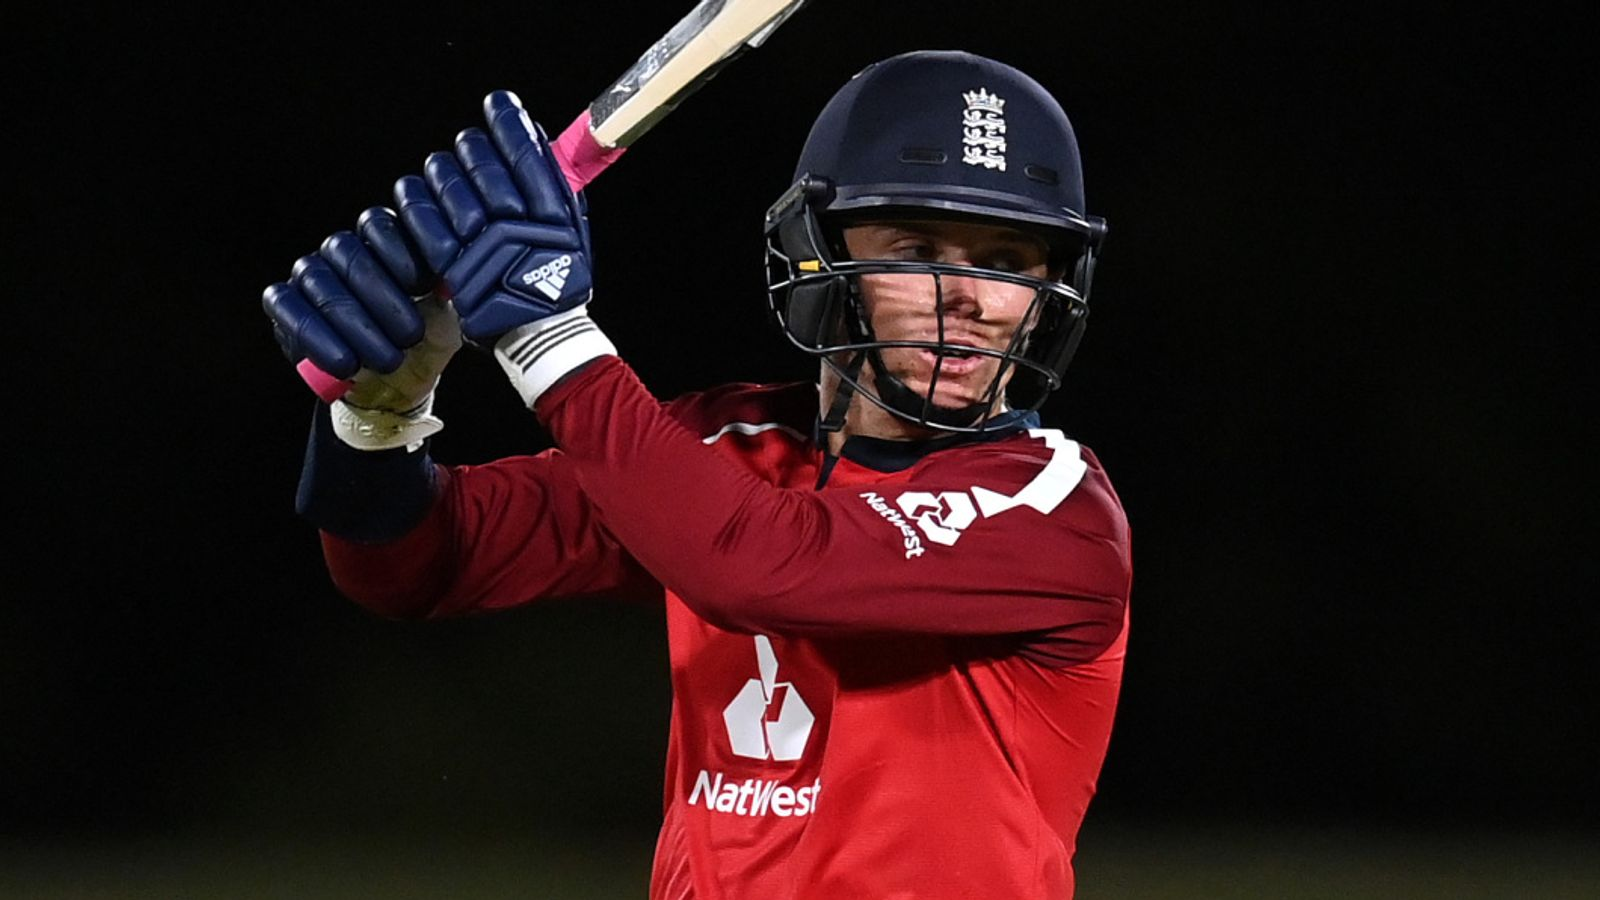 Sam Curran and Joe Root fire with the bat in England's internal T20 warm-up match ahead of South Africa series - Sky Sports